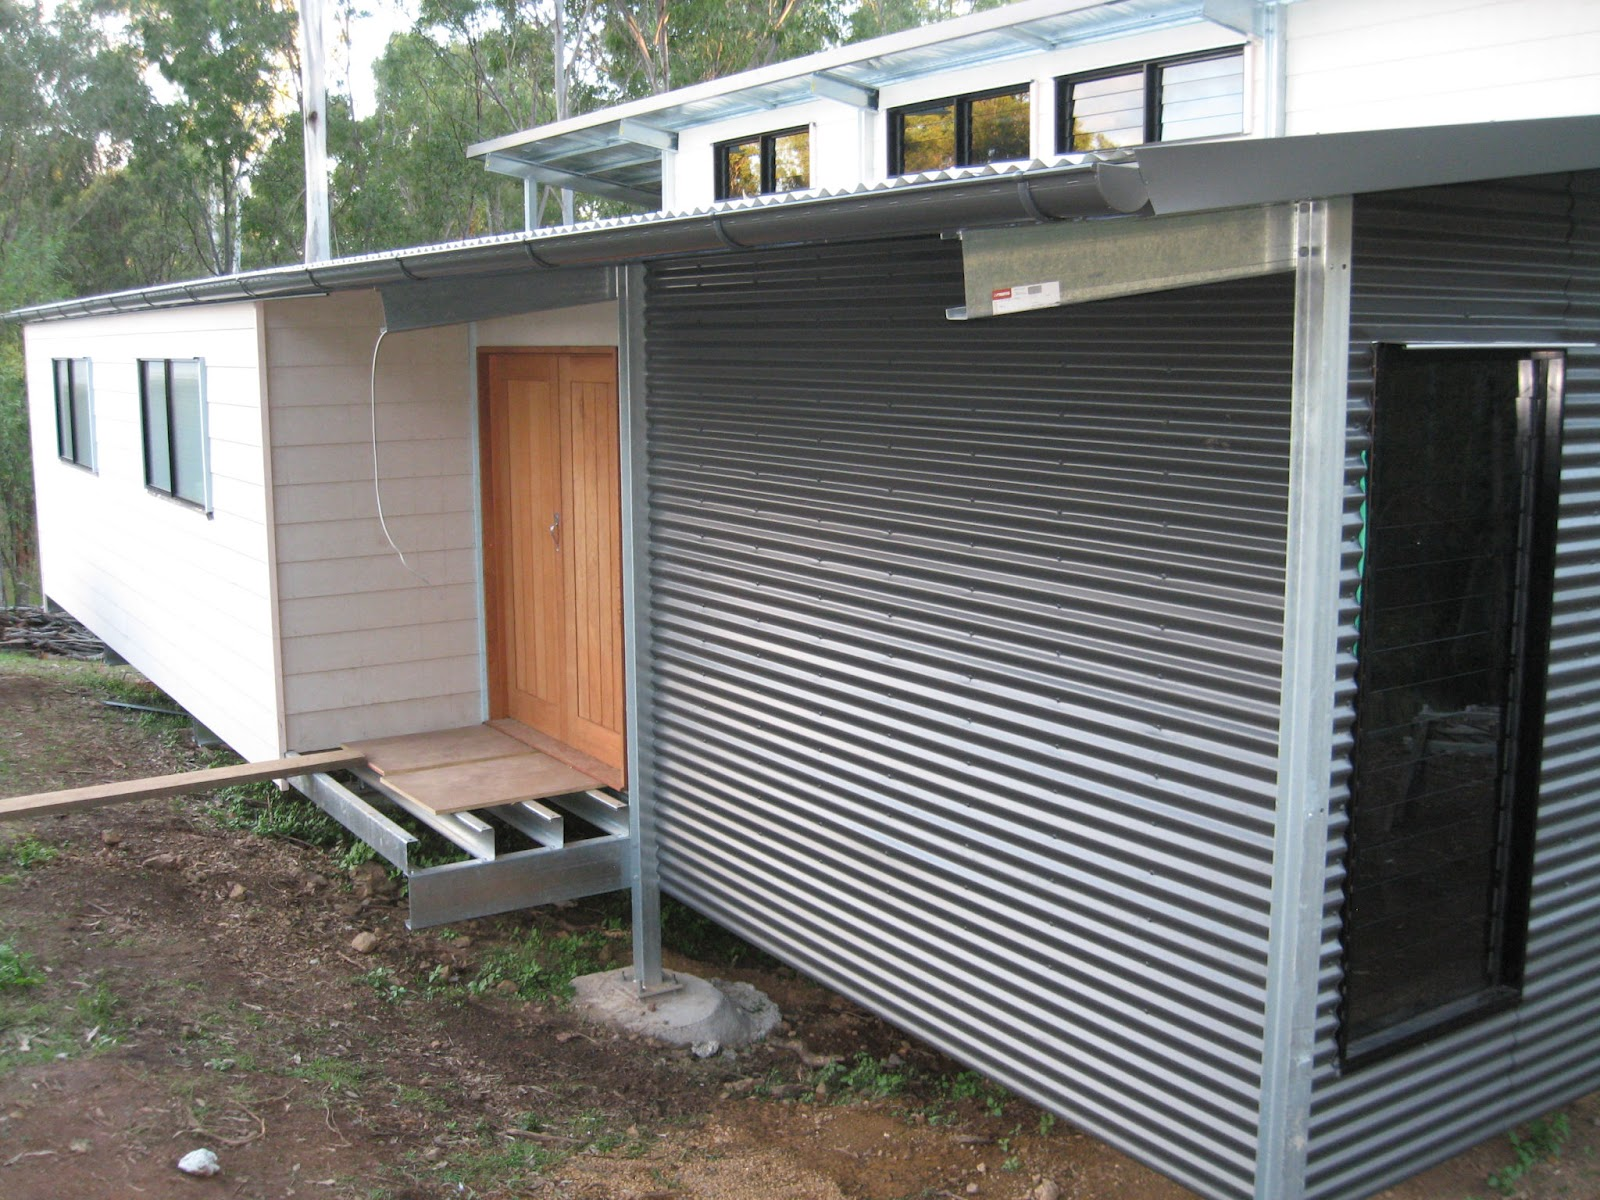 Bespoke 20 x 10 garden shed also Suburban Buildings 2 likewise Barndominium Plans And Prices furthermore Open Carport Designs Pdf Randkey further Quonset Hut. on pole building home designs